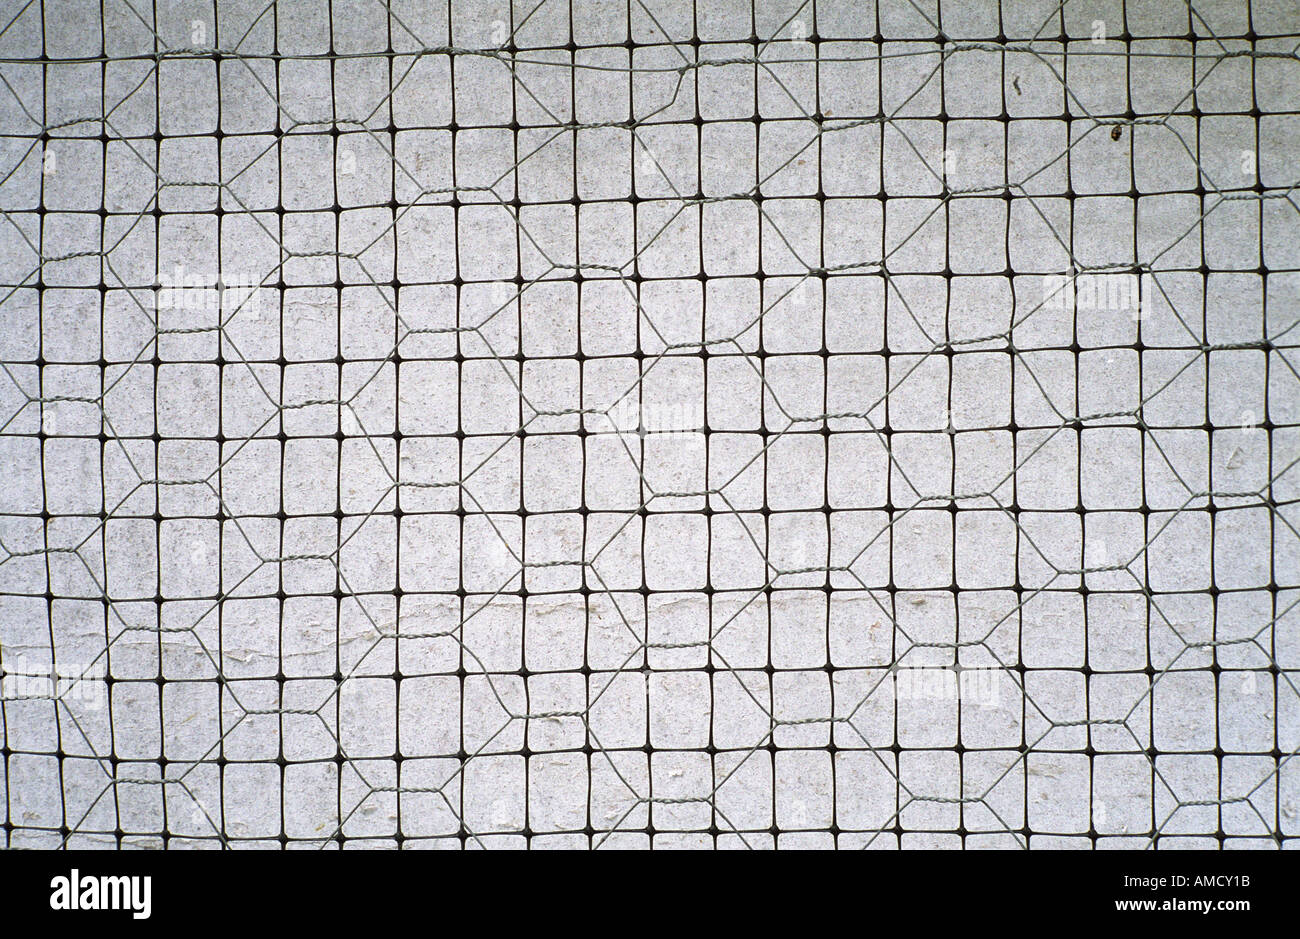 Black Chicken Wire Fence Stock Photos & Black Chicken Wire Fence ...